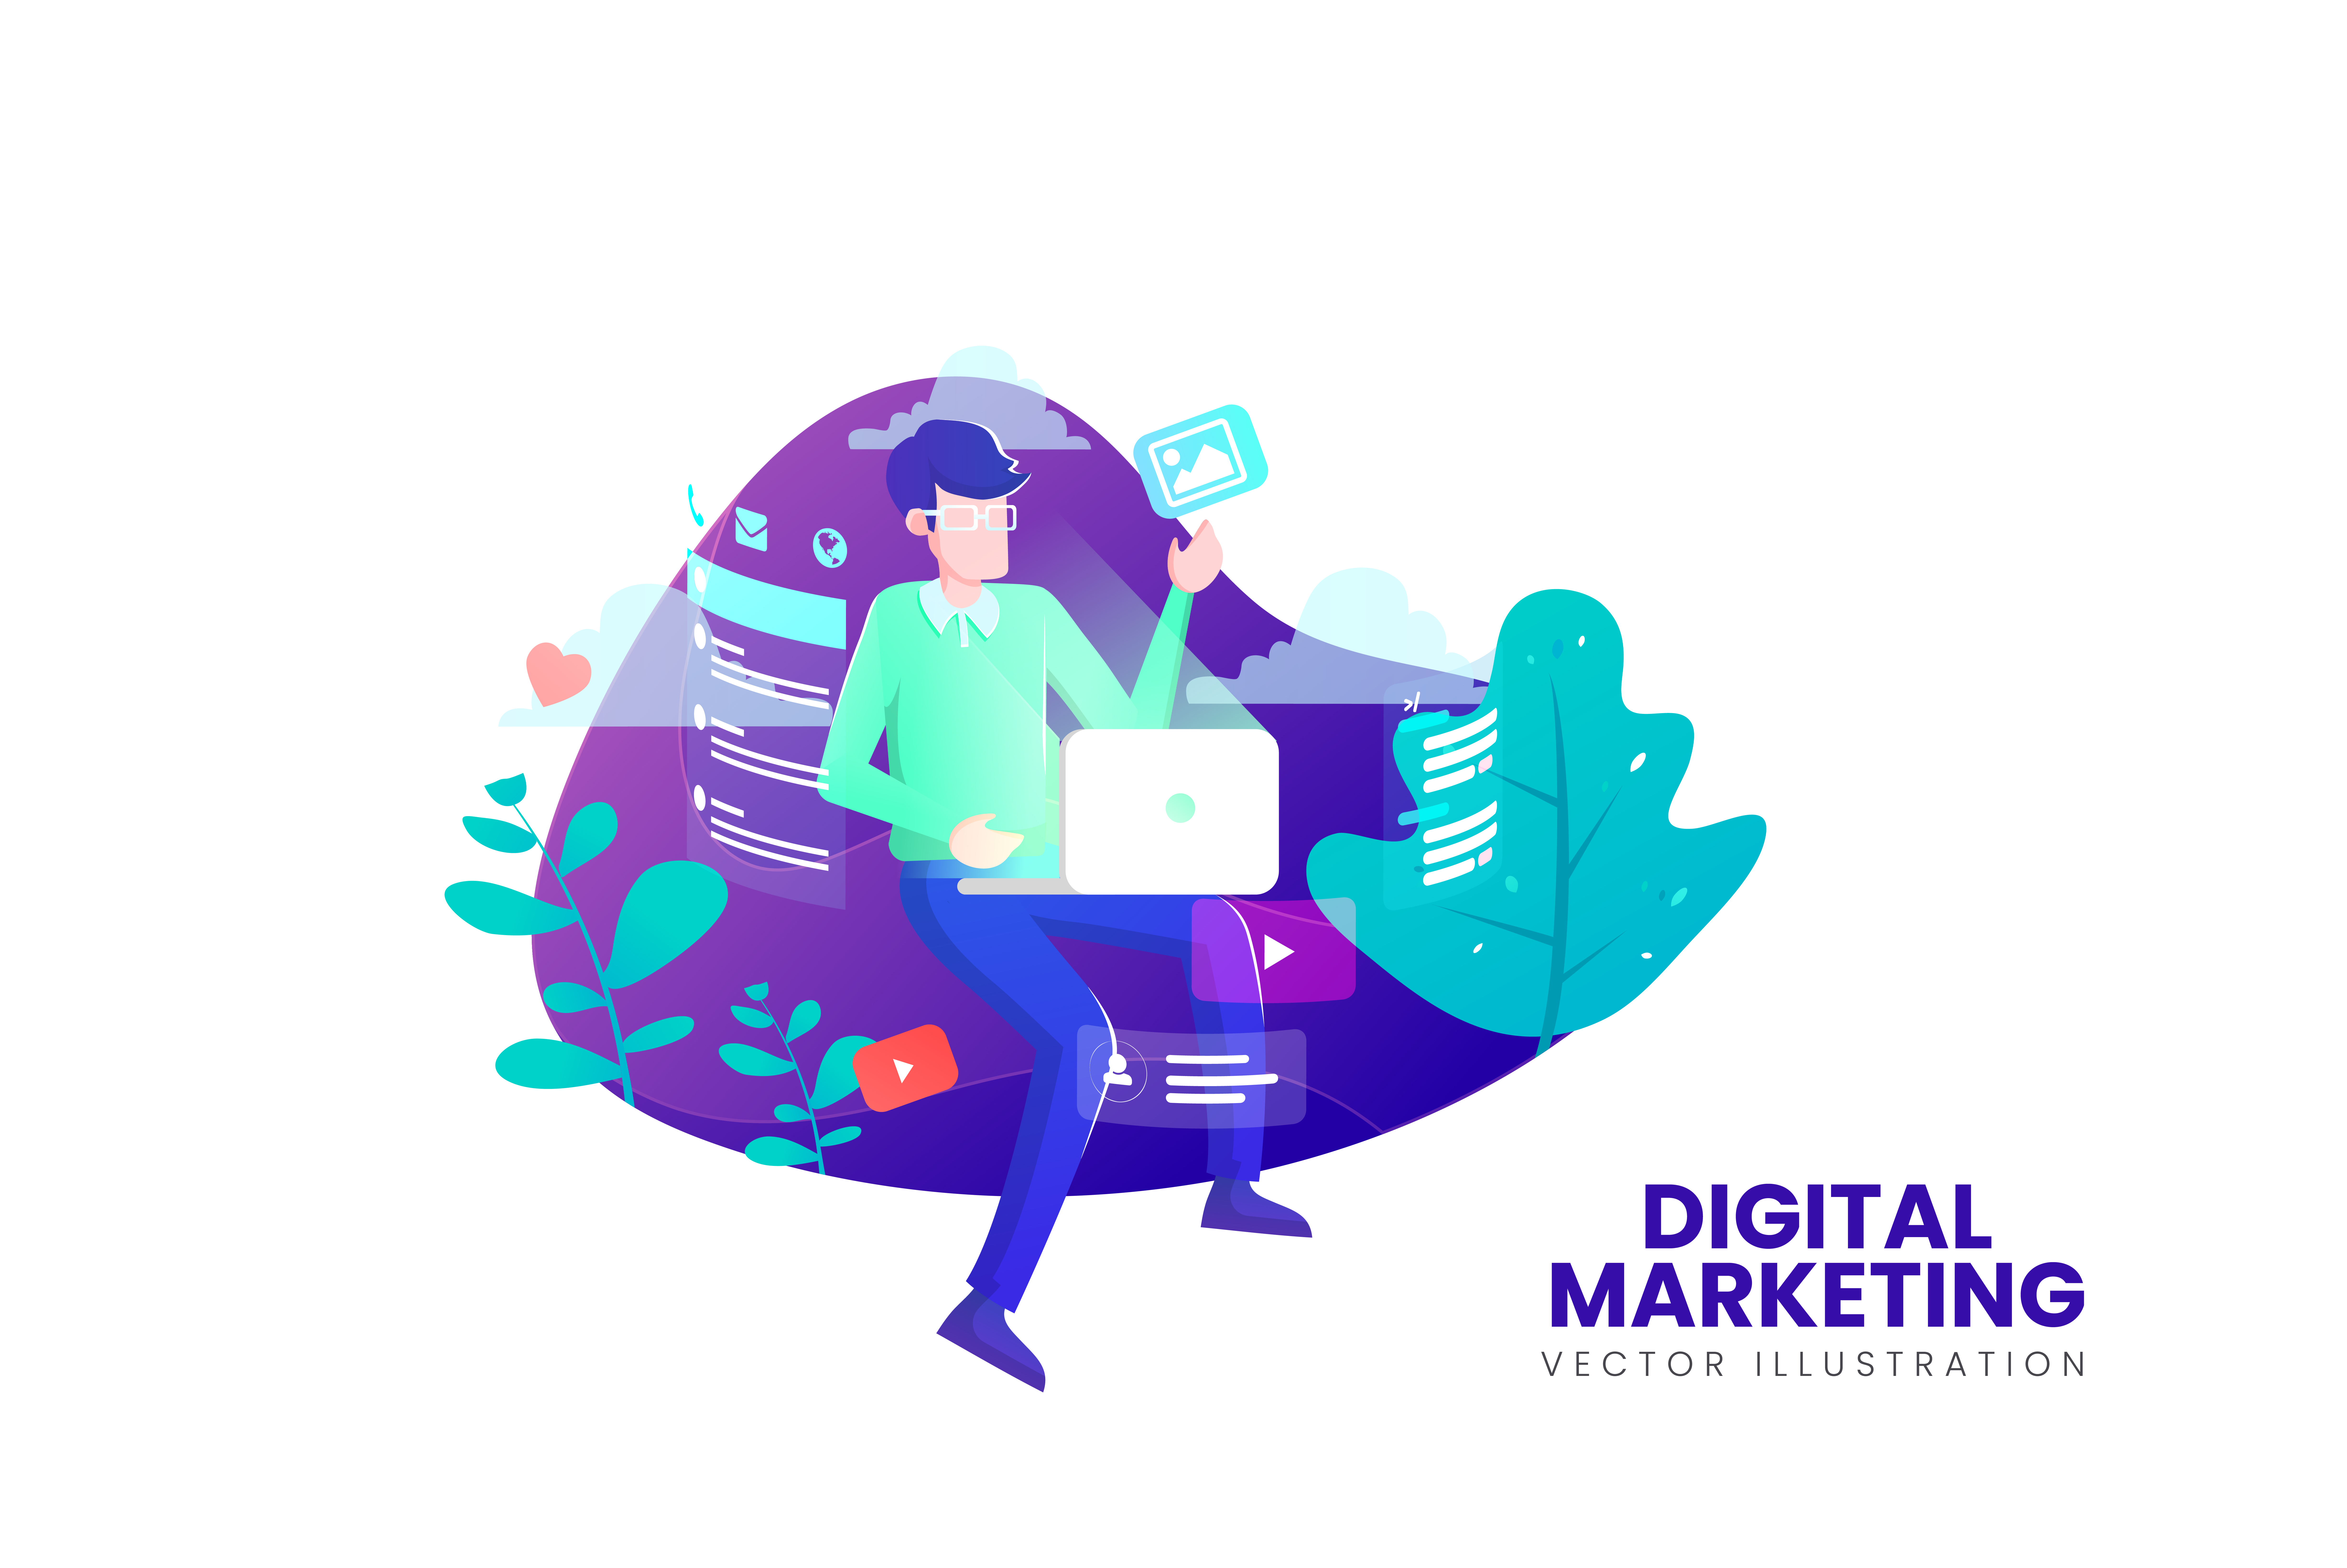 The Top 5 Digital Marketing Trends in 2020 You MUST Know to Stay Competitive